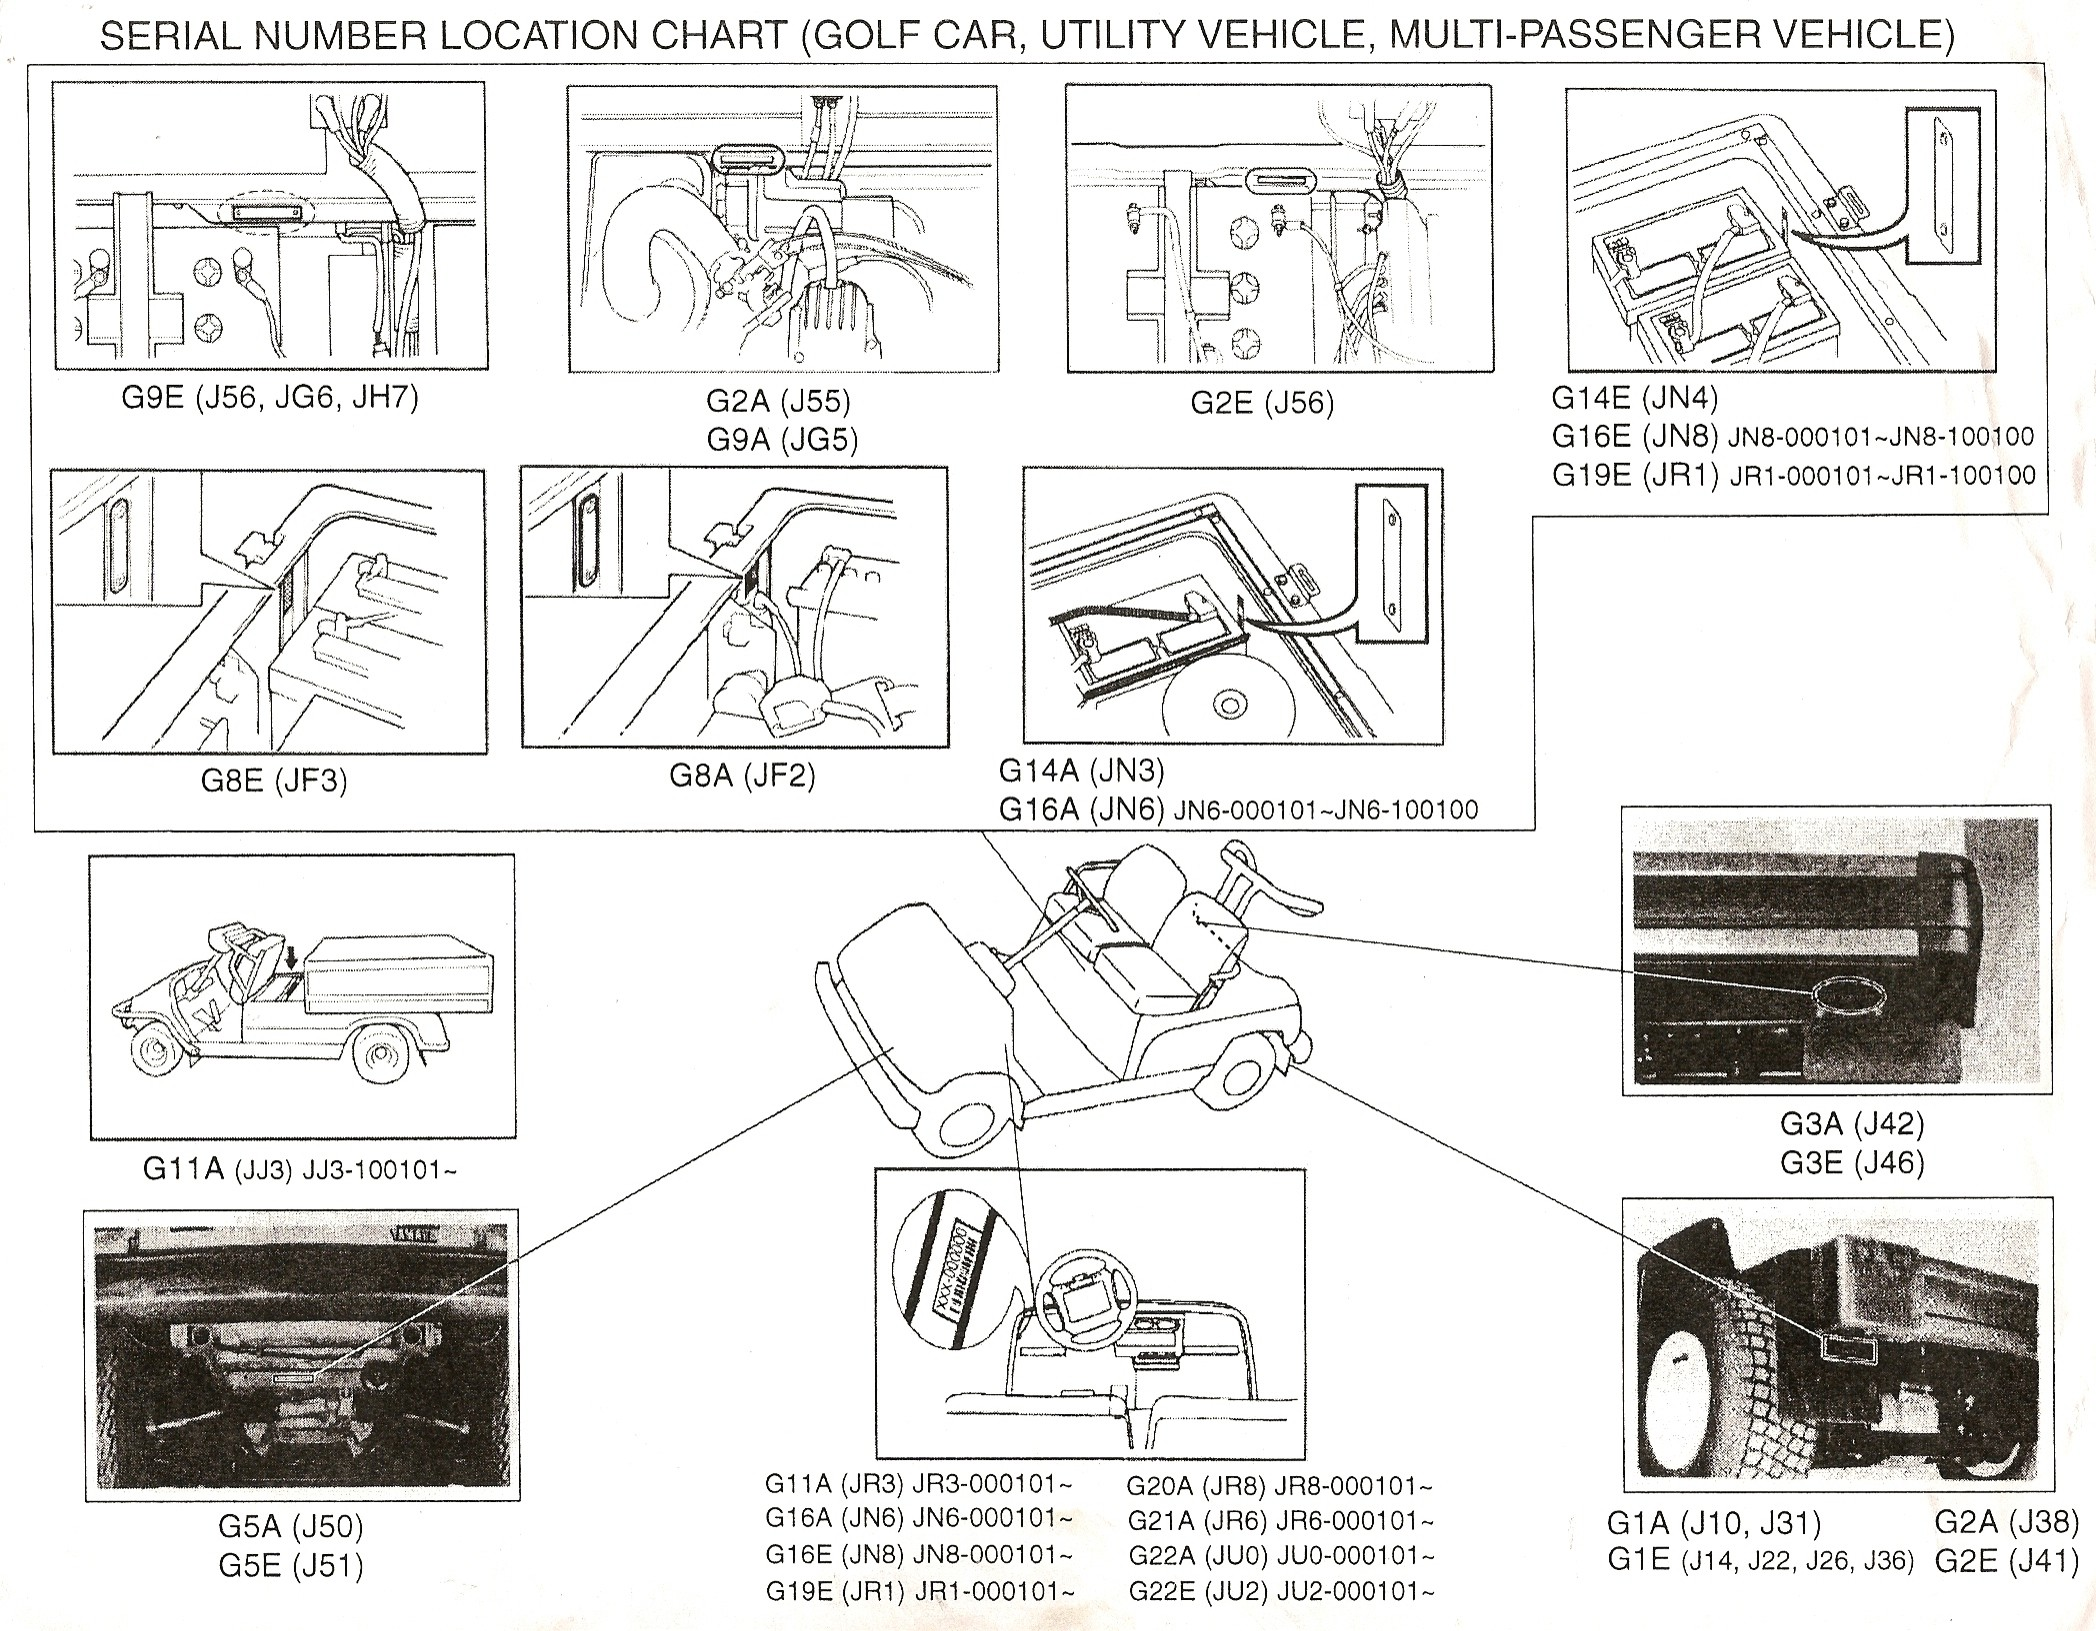 Web YAMAHA GOLF CAR SERIAL NUMBER LOCATOR yamaha serial number locator yamaha golf cart engine diagram at aneh.co